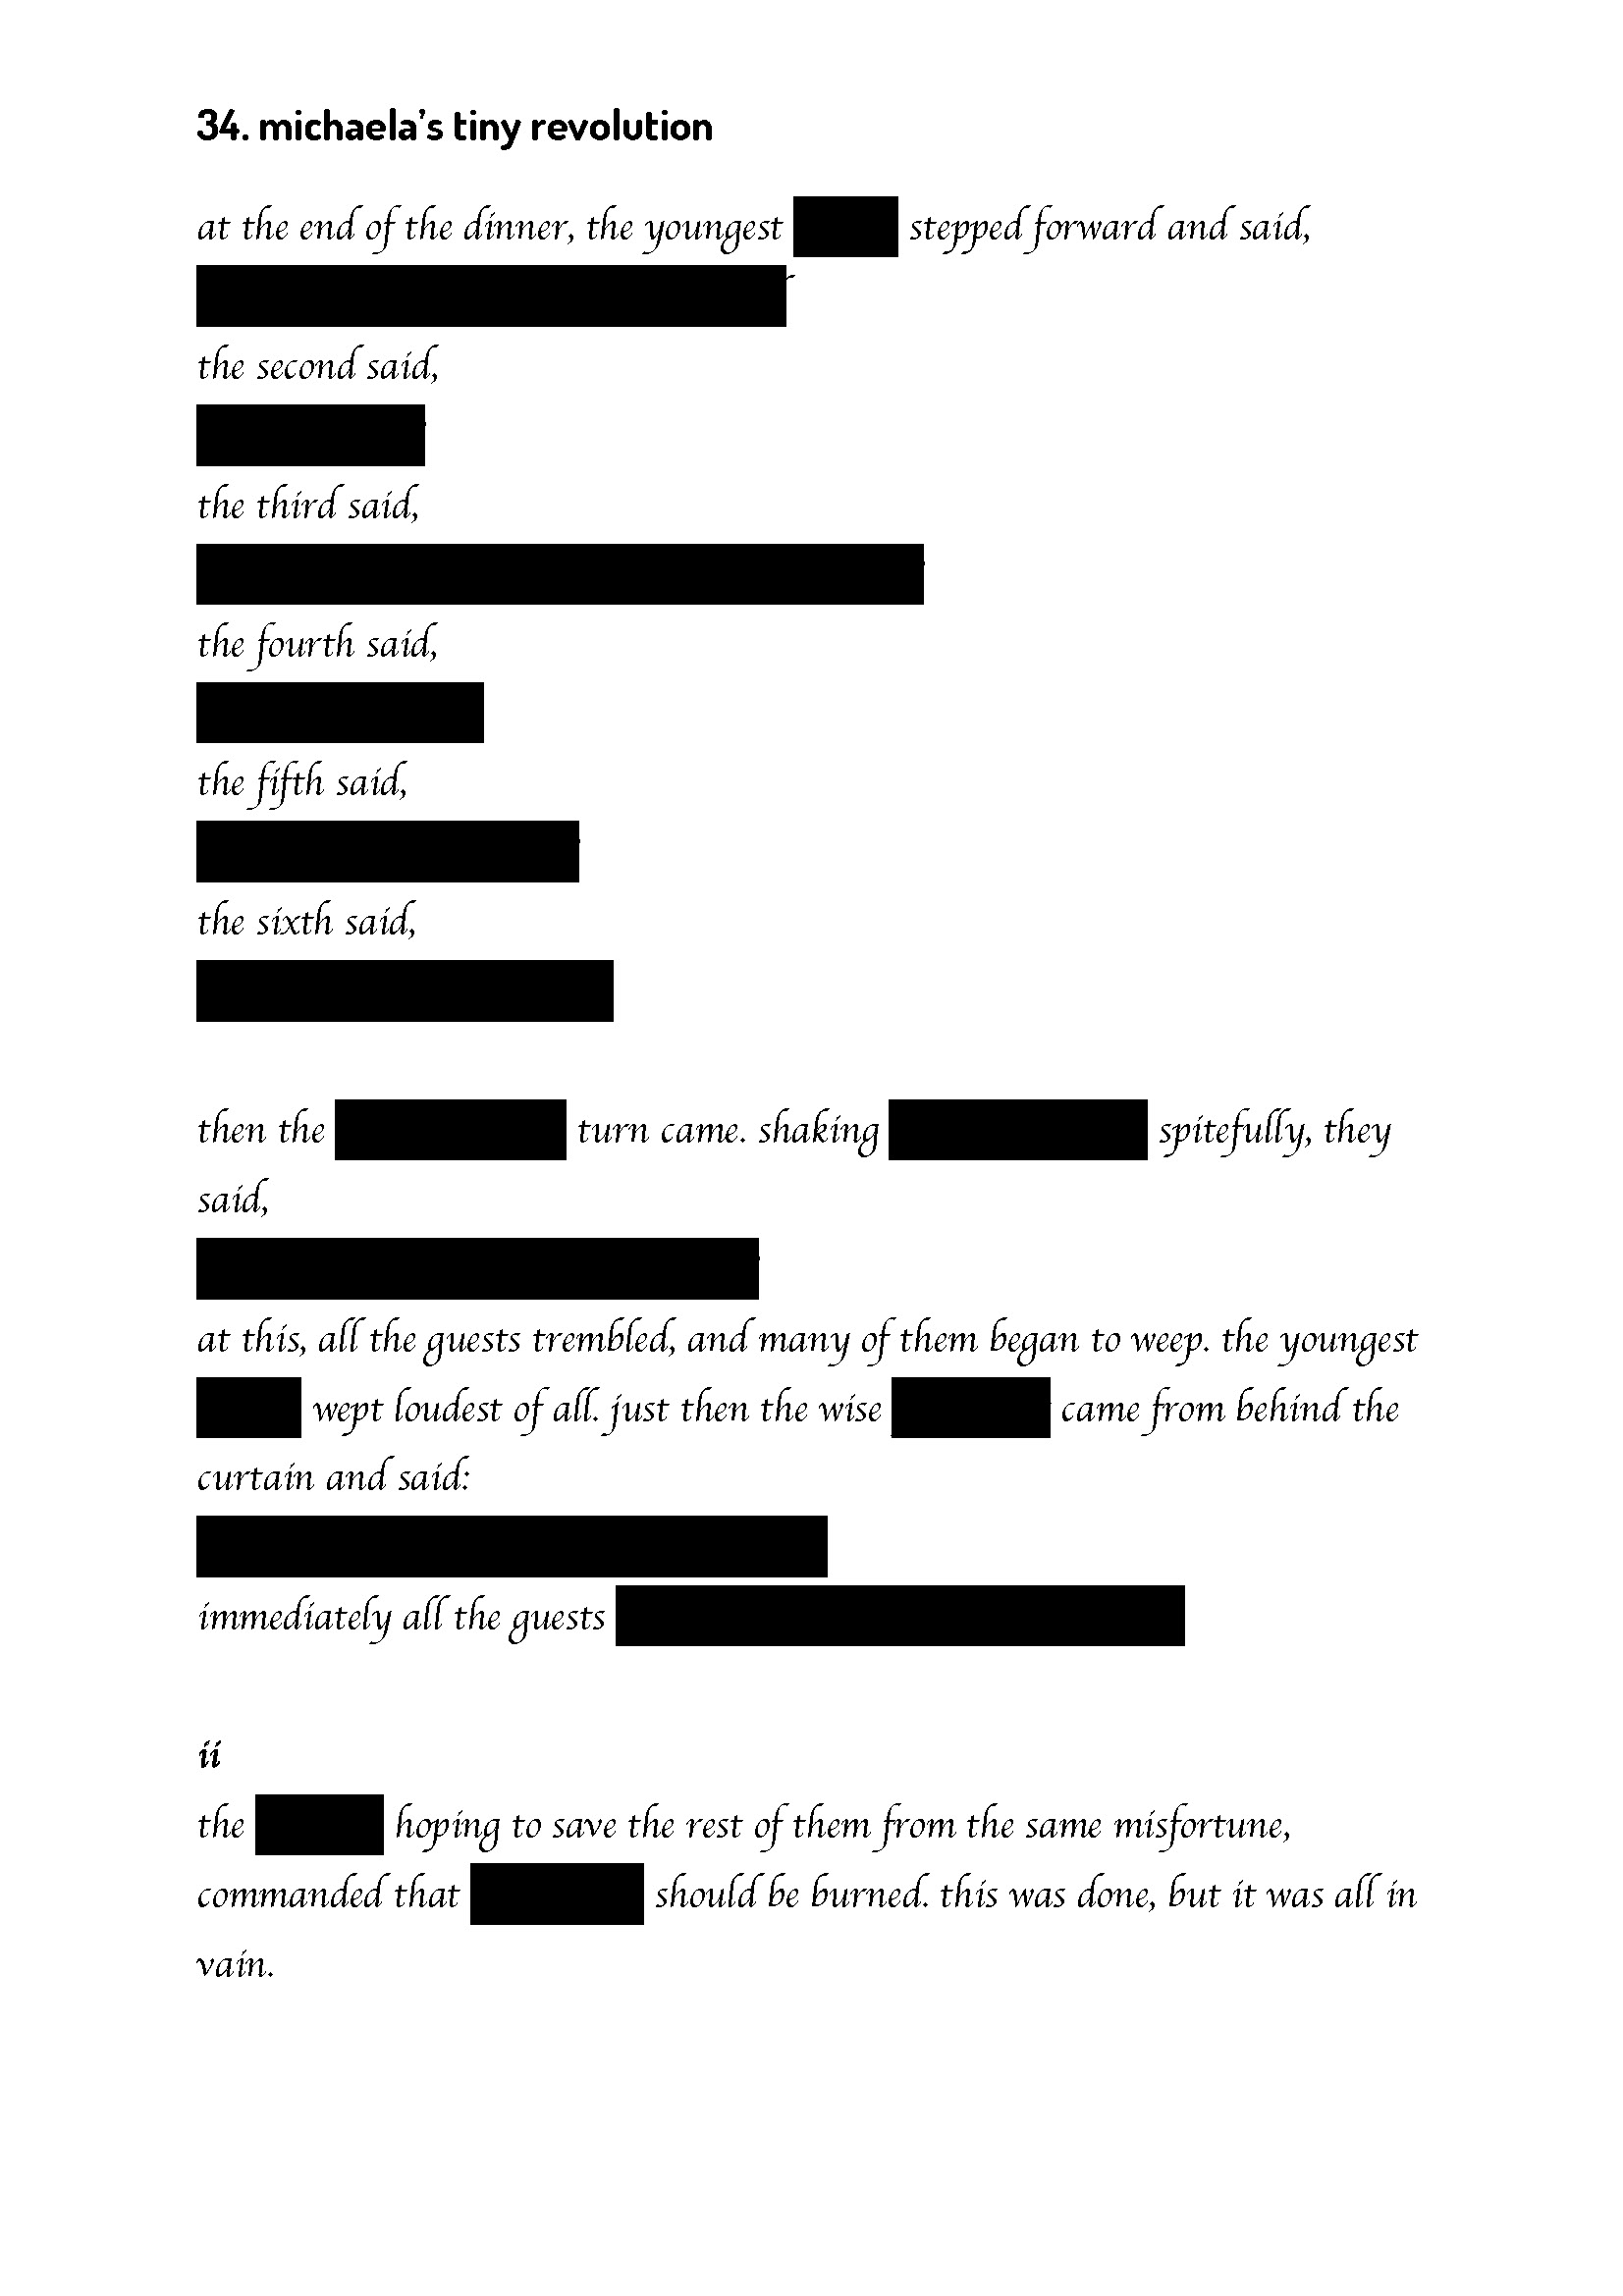 34 michaelas trev sleeping redacted_Page_2